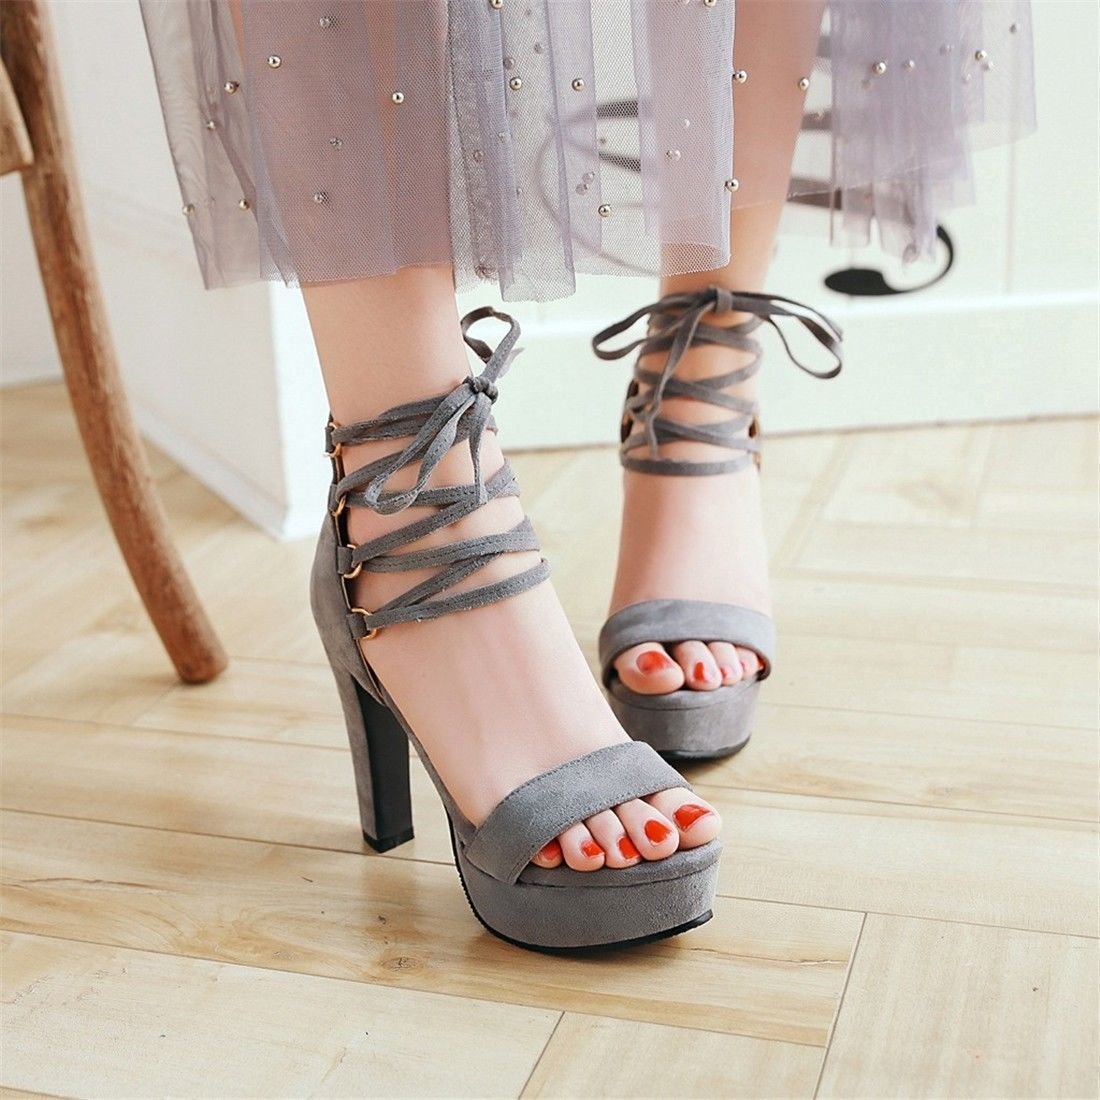 YU/&XIN-Spring and Autumn Womens Shoes Summer high-heeled fashion bold with Cross Strap package with slotted banquet sandals